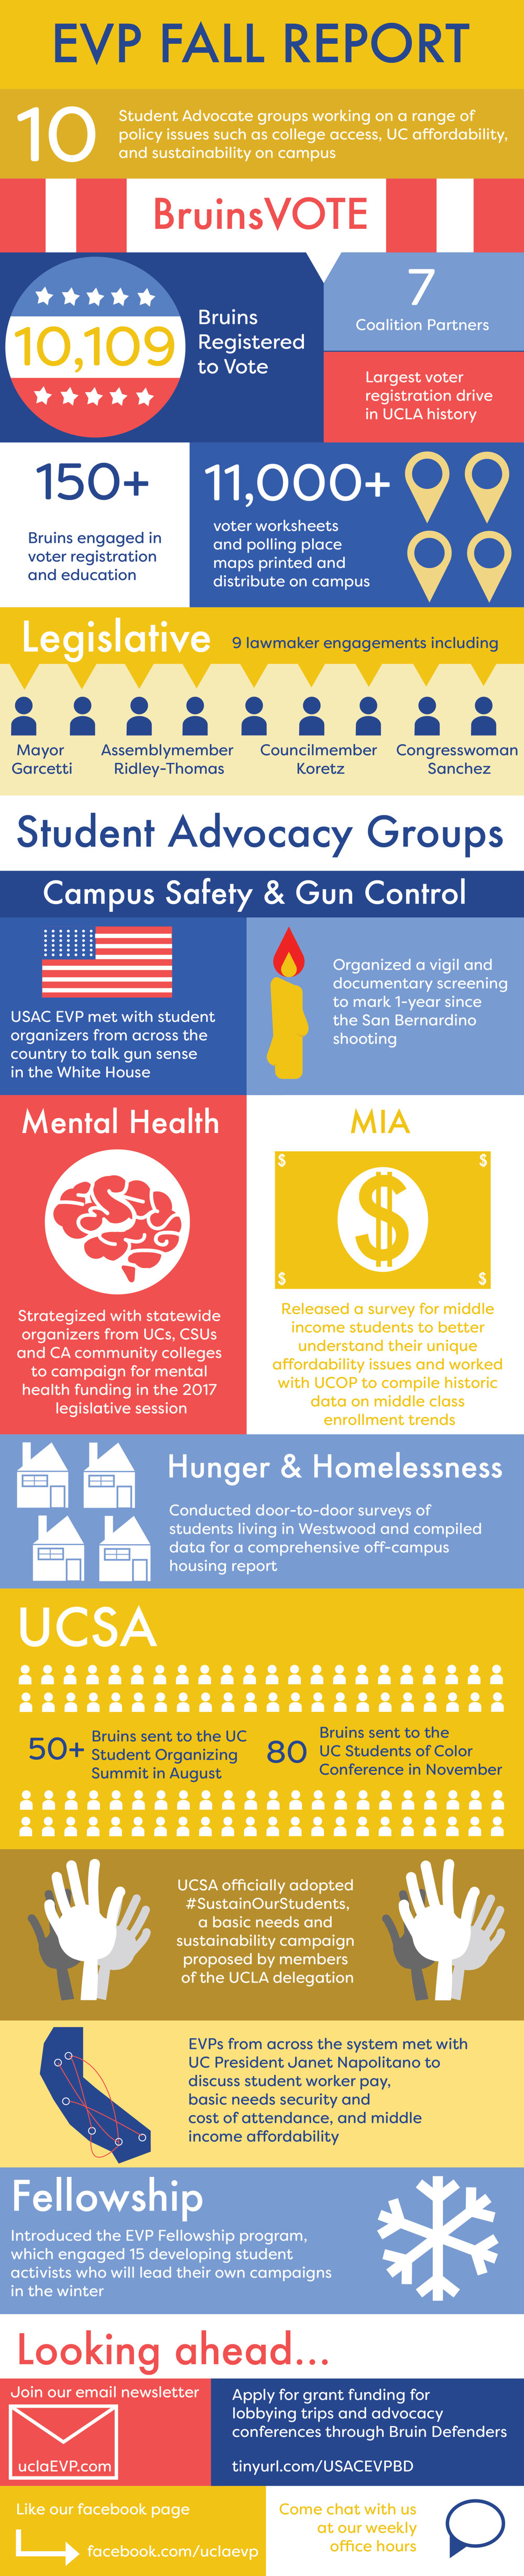 Fall 2016 Impact Report (click above to view)